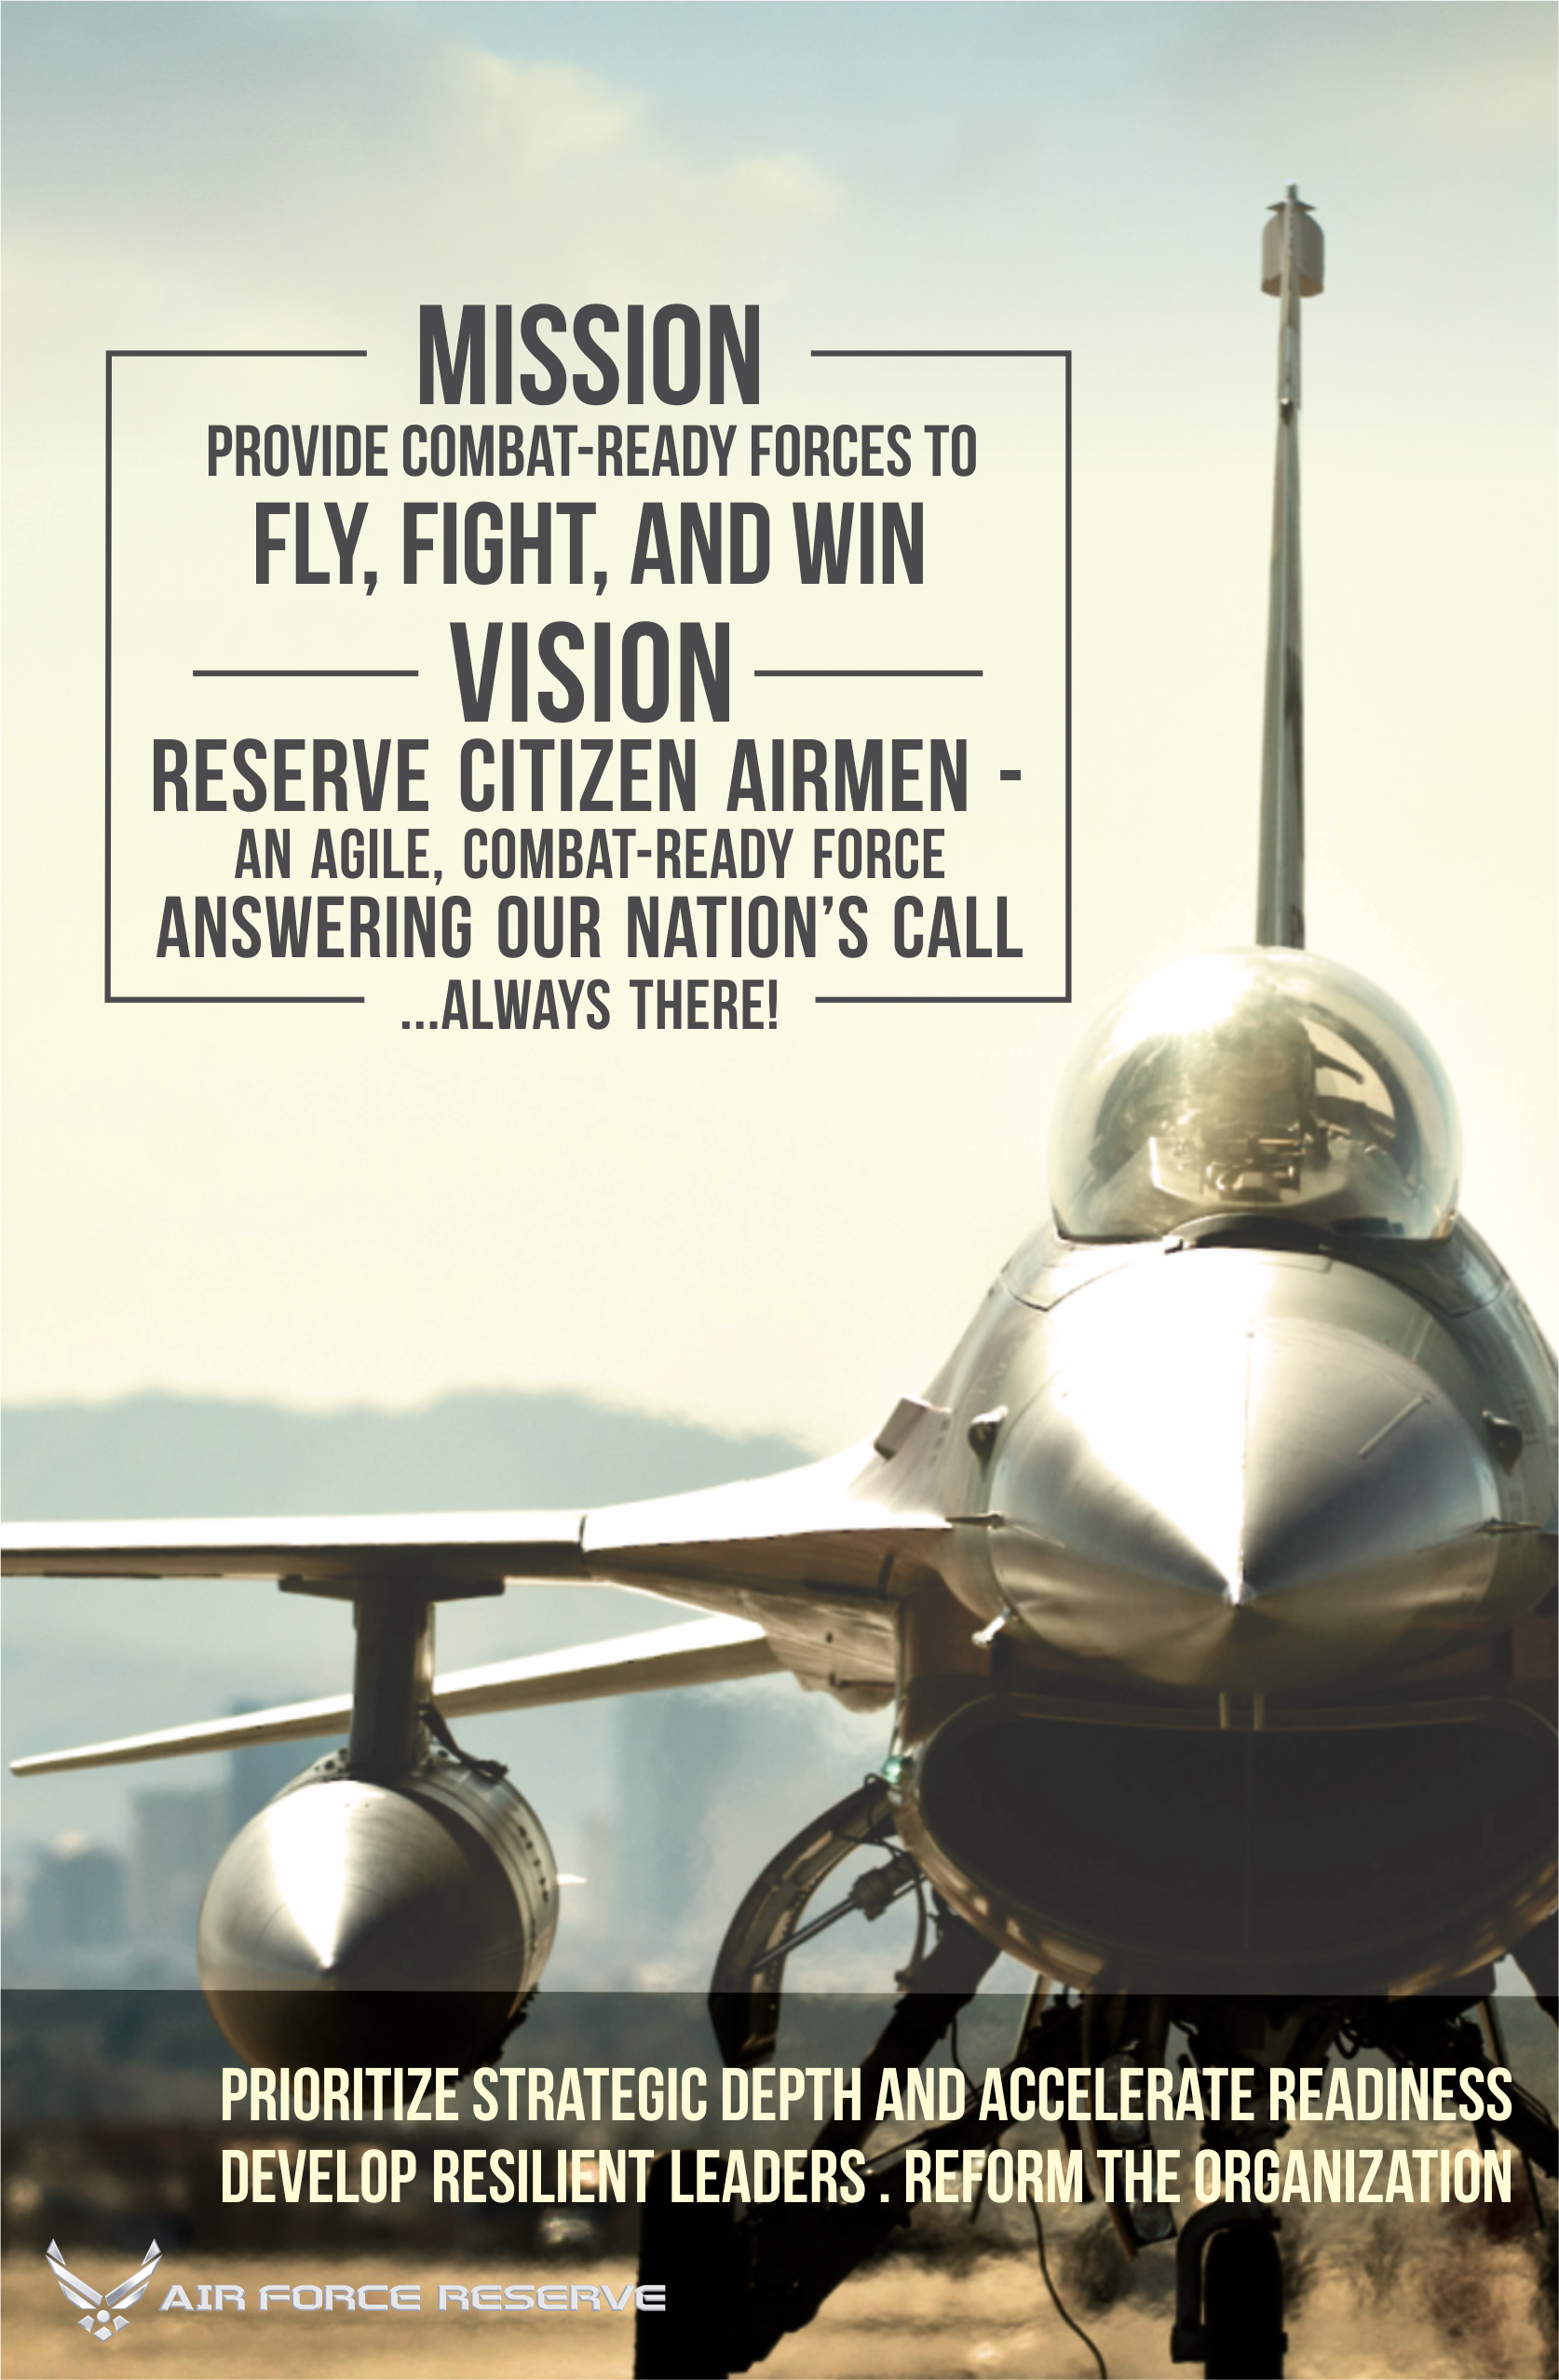 Air Force Reserve mision is to provide combat ready forces to fly, fight and win